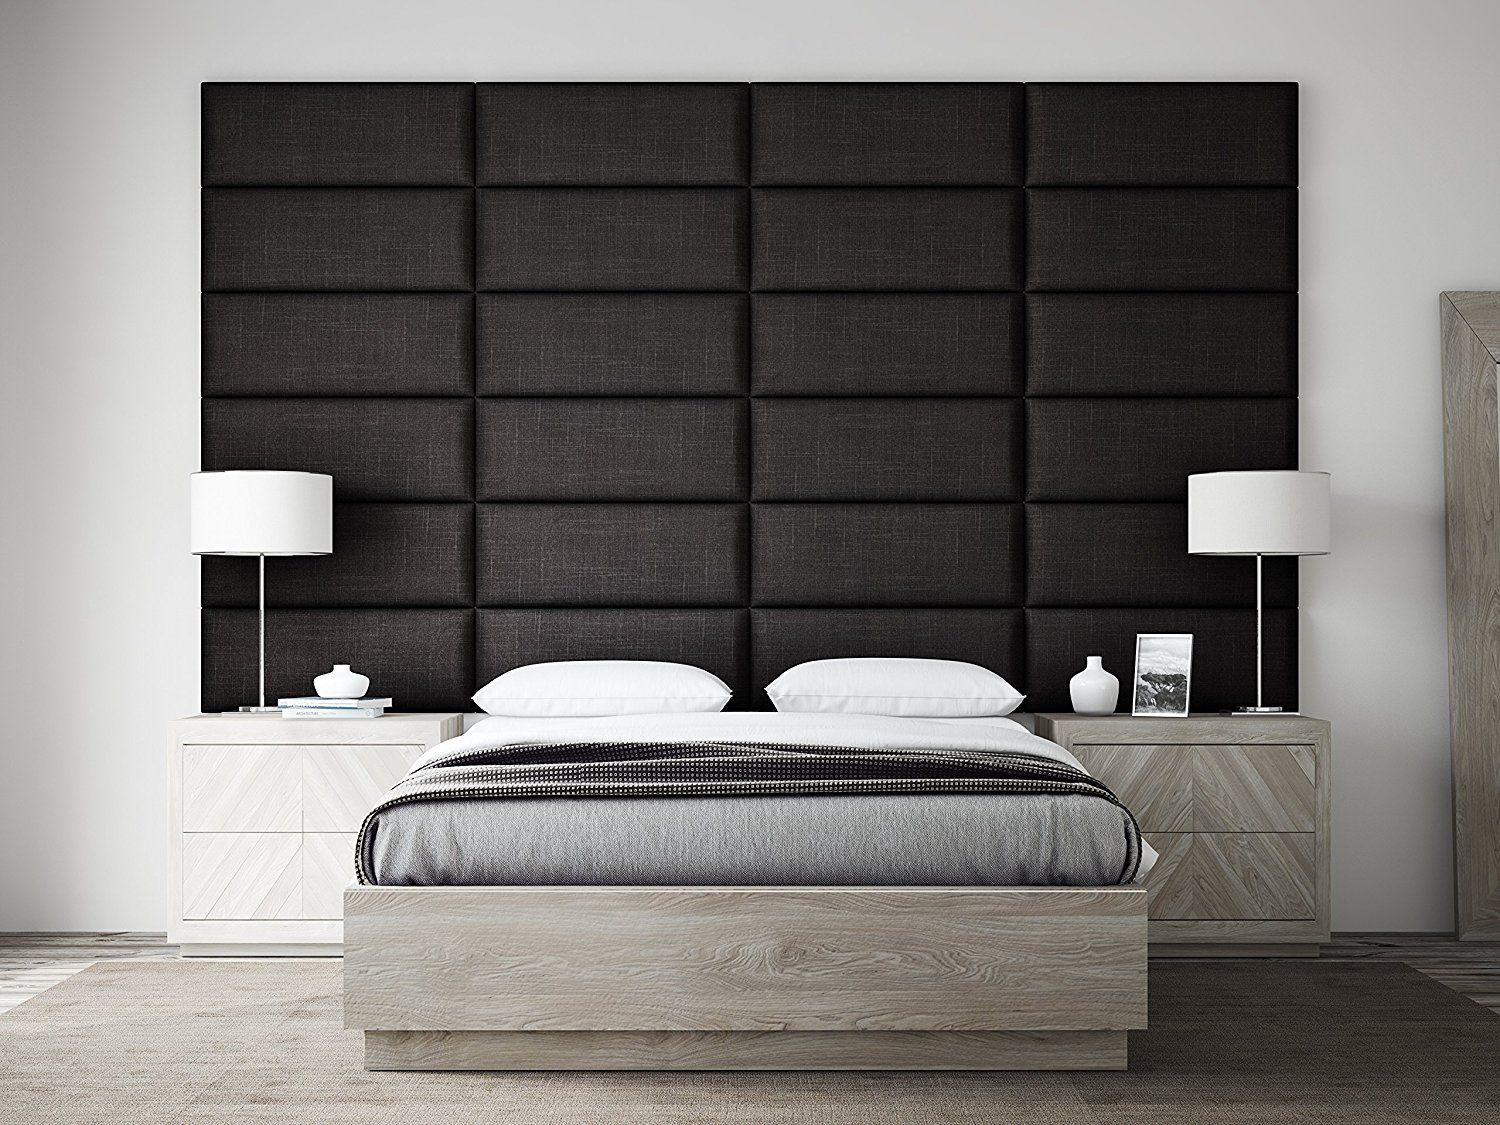 Find a unique wall panel and hang it as a headboard. Like